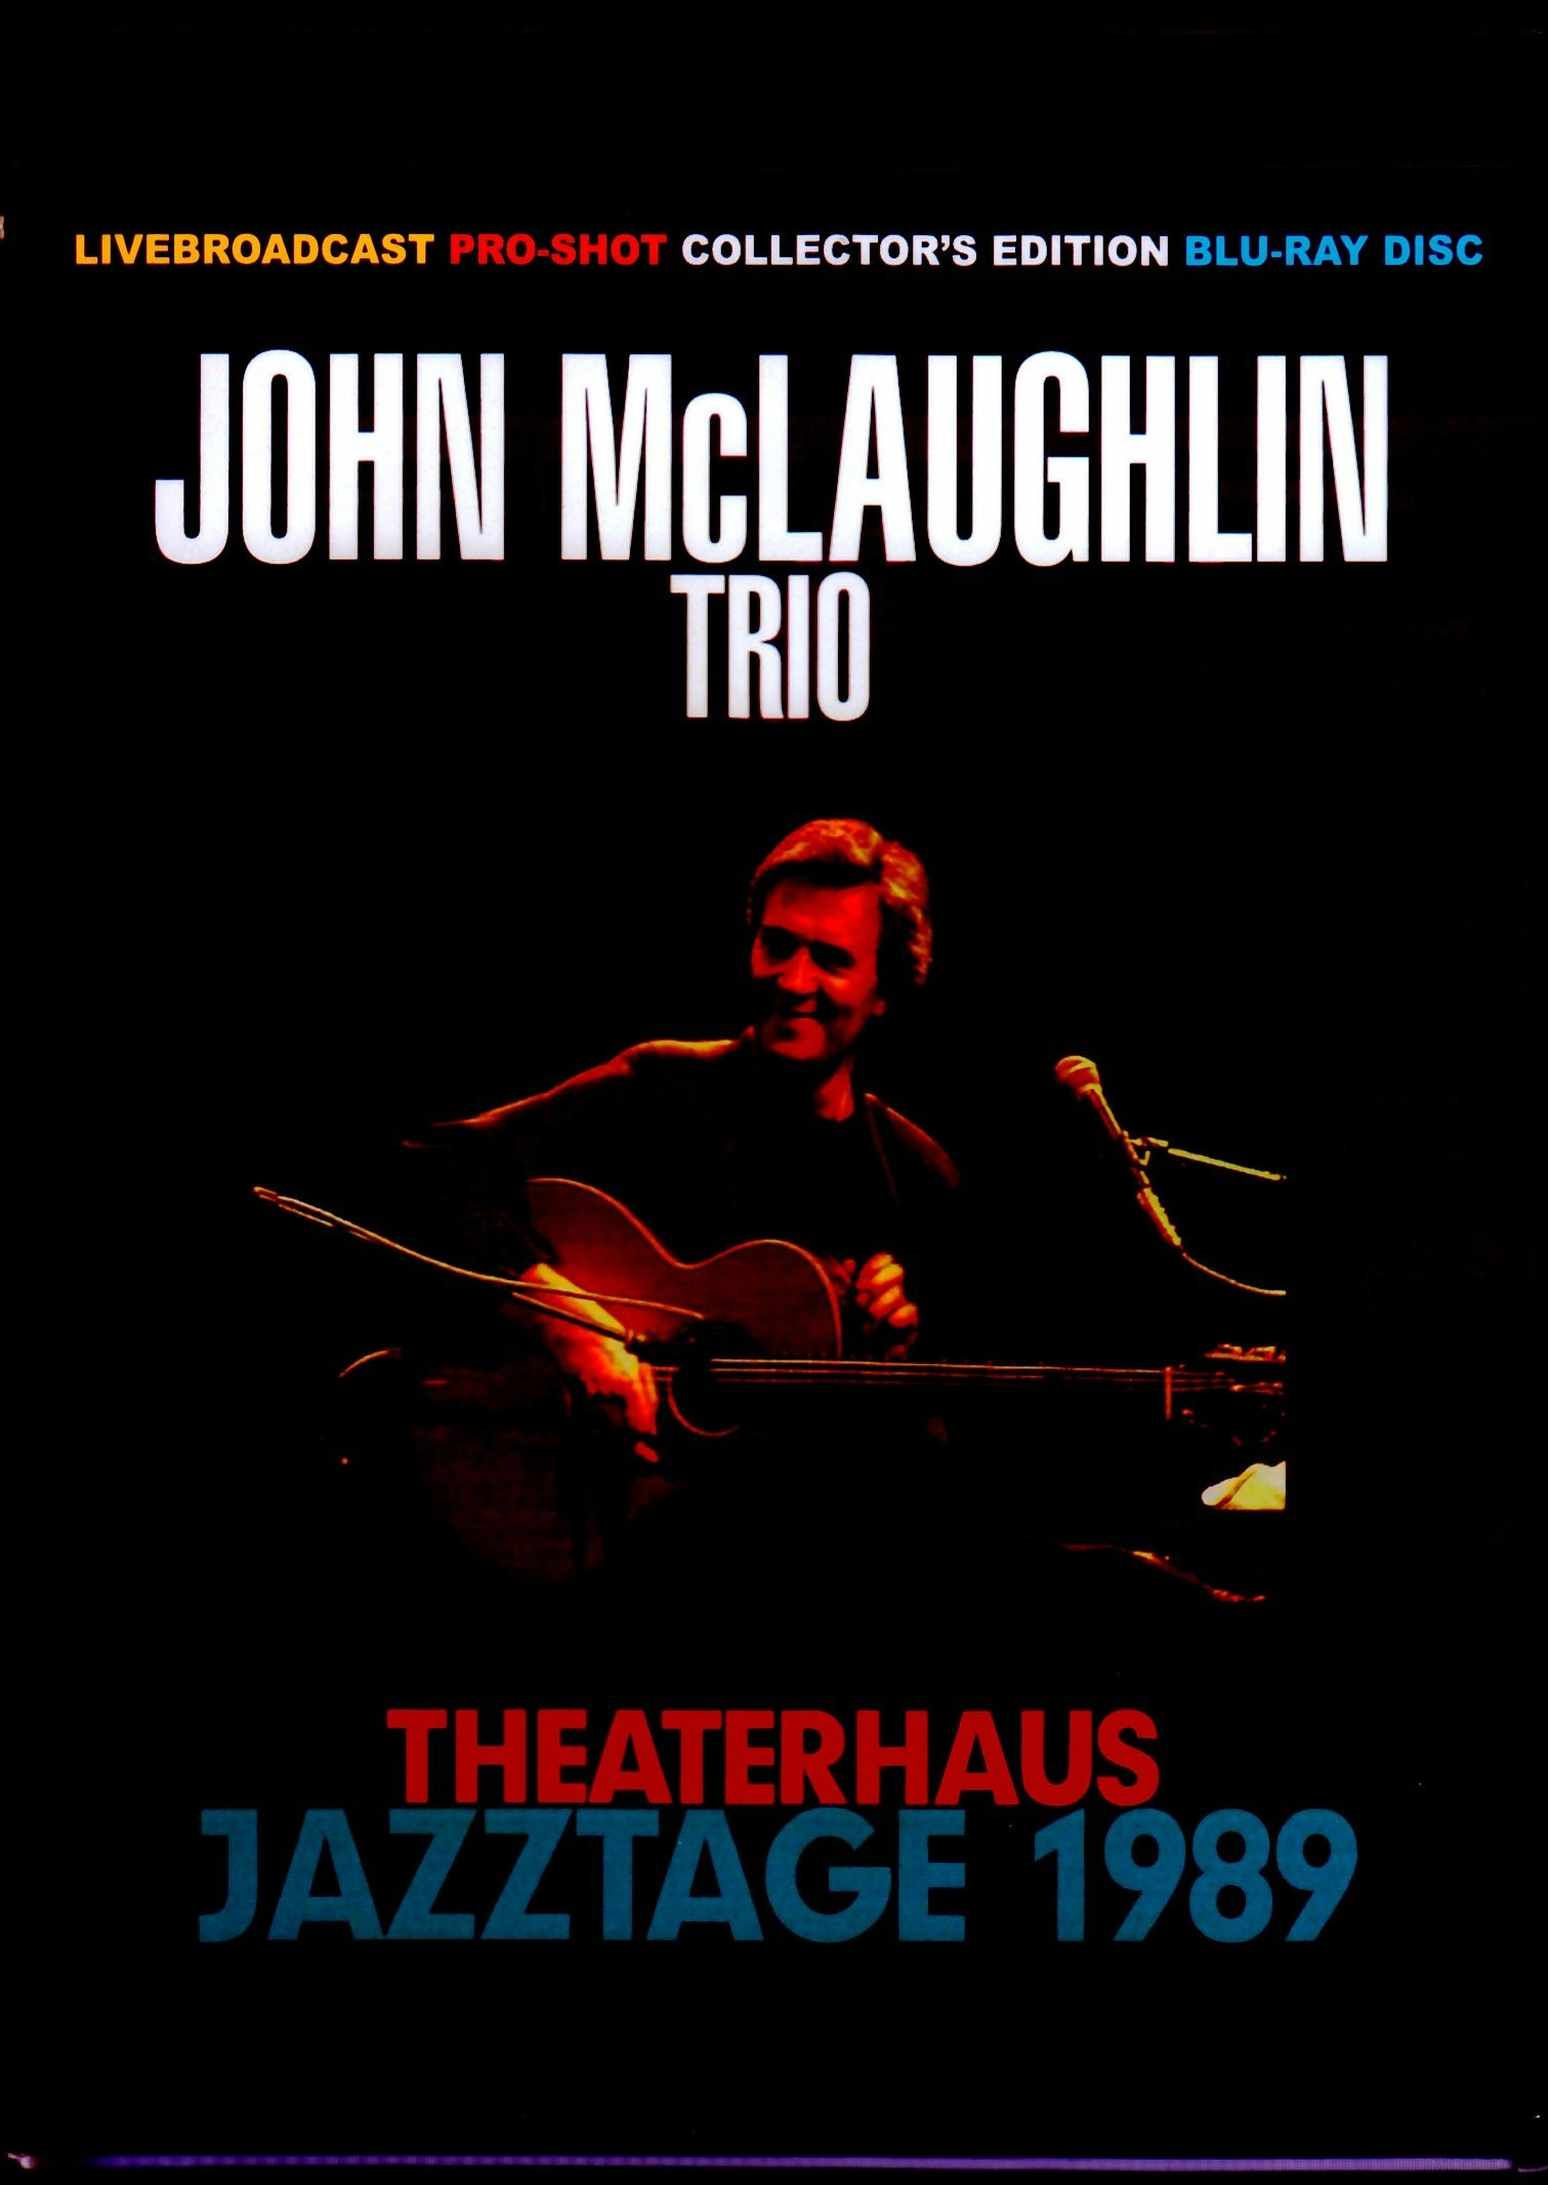 John McLaughlin Trio ジョン・マクラフリン/Germany 1989 Blu-Ray Version